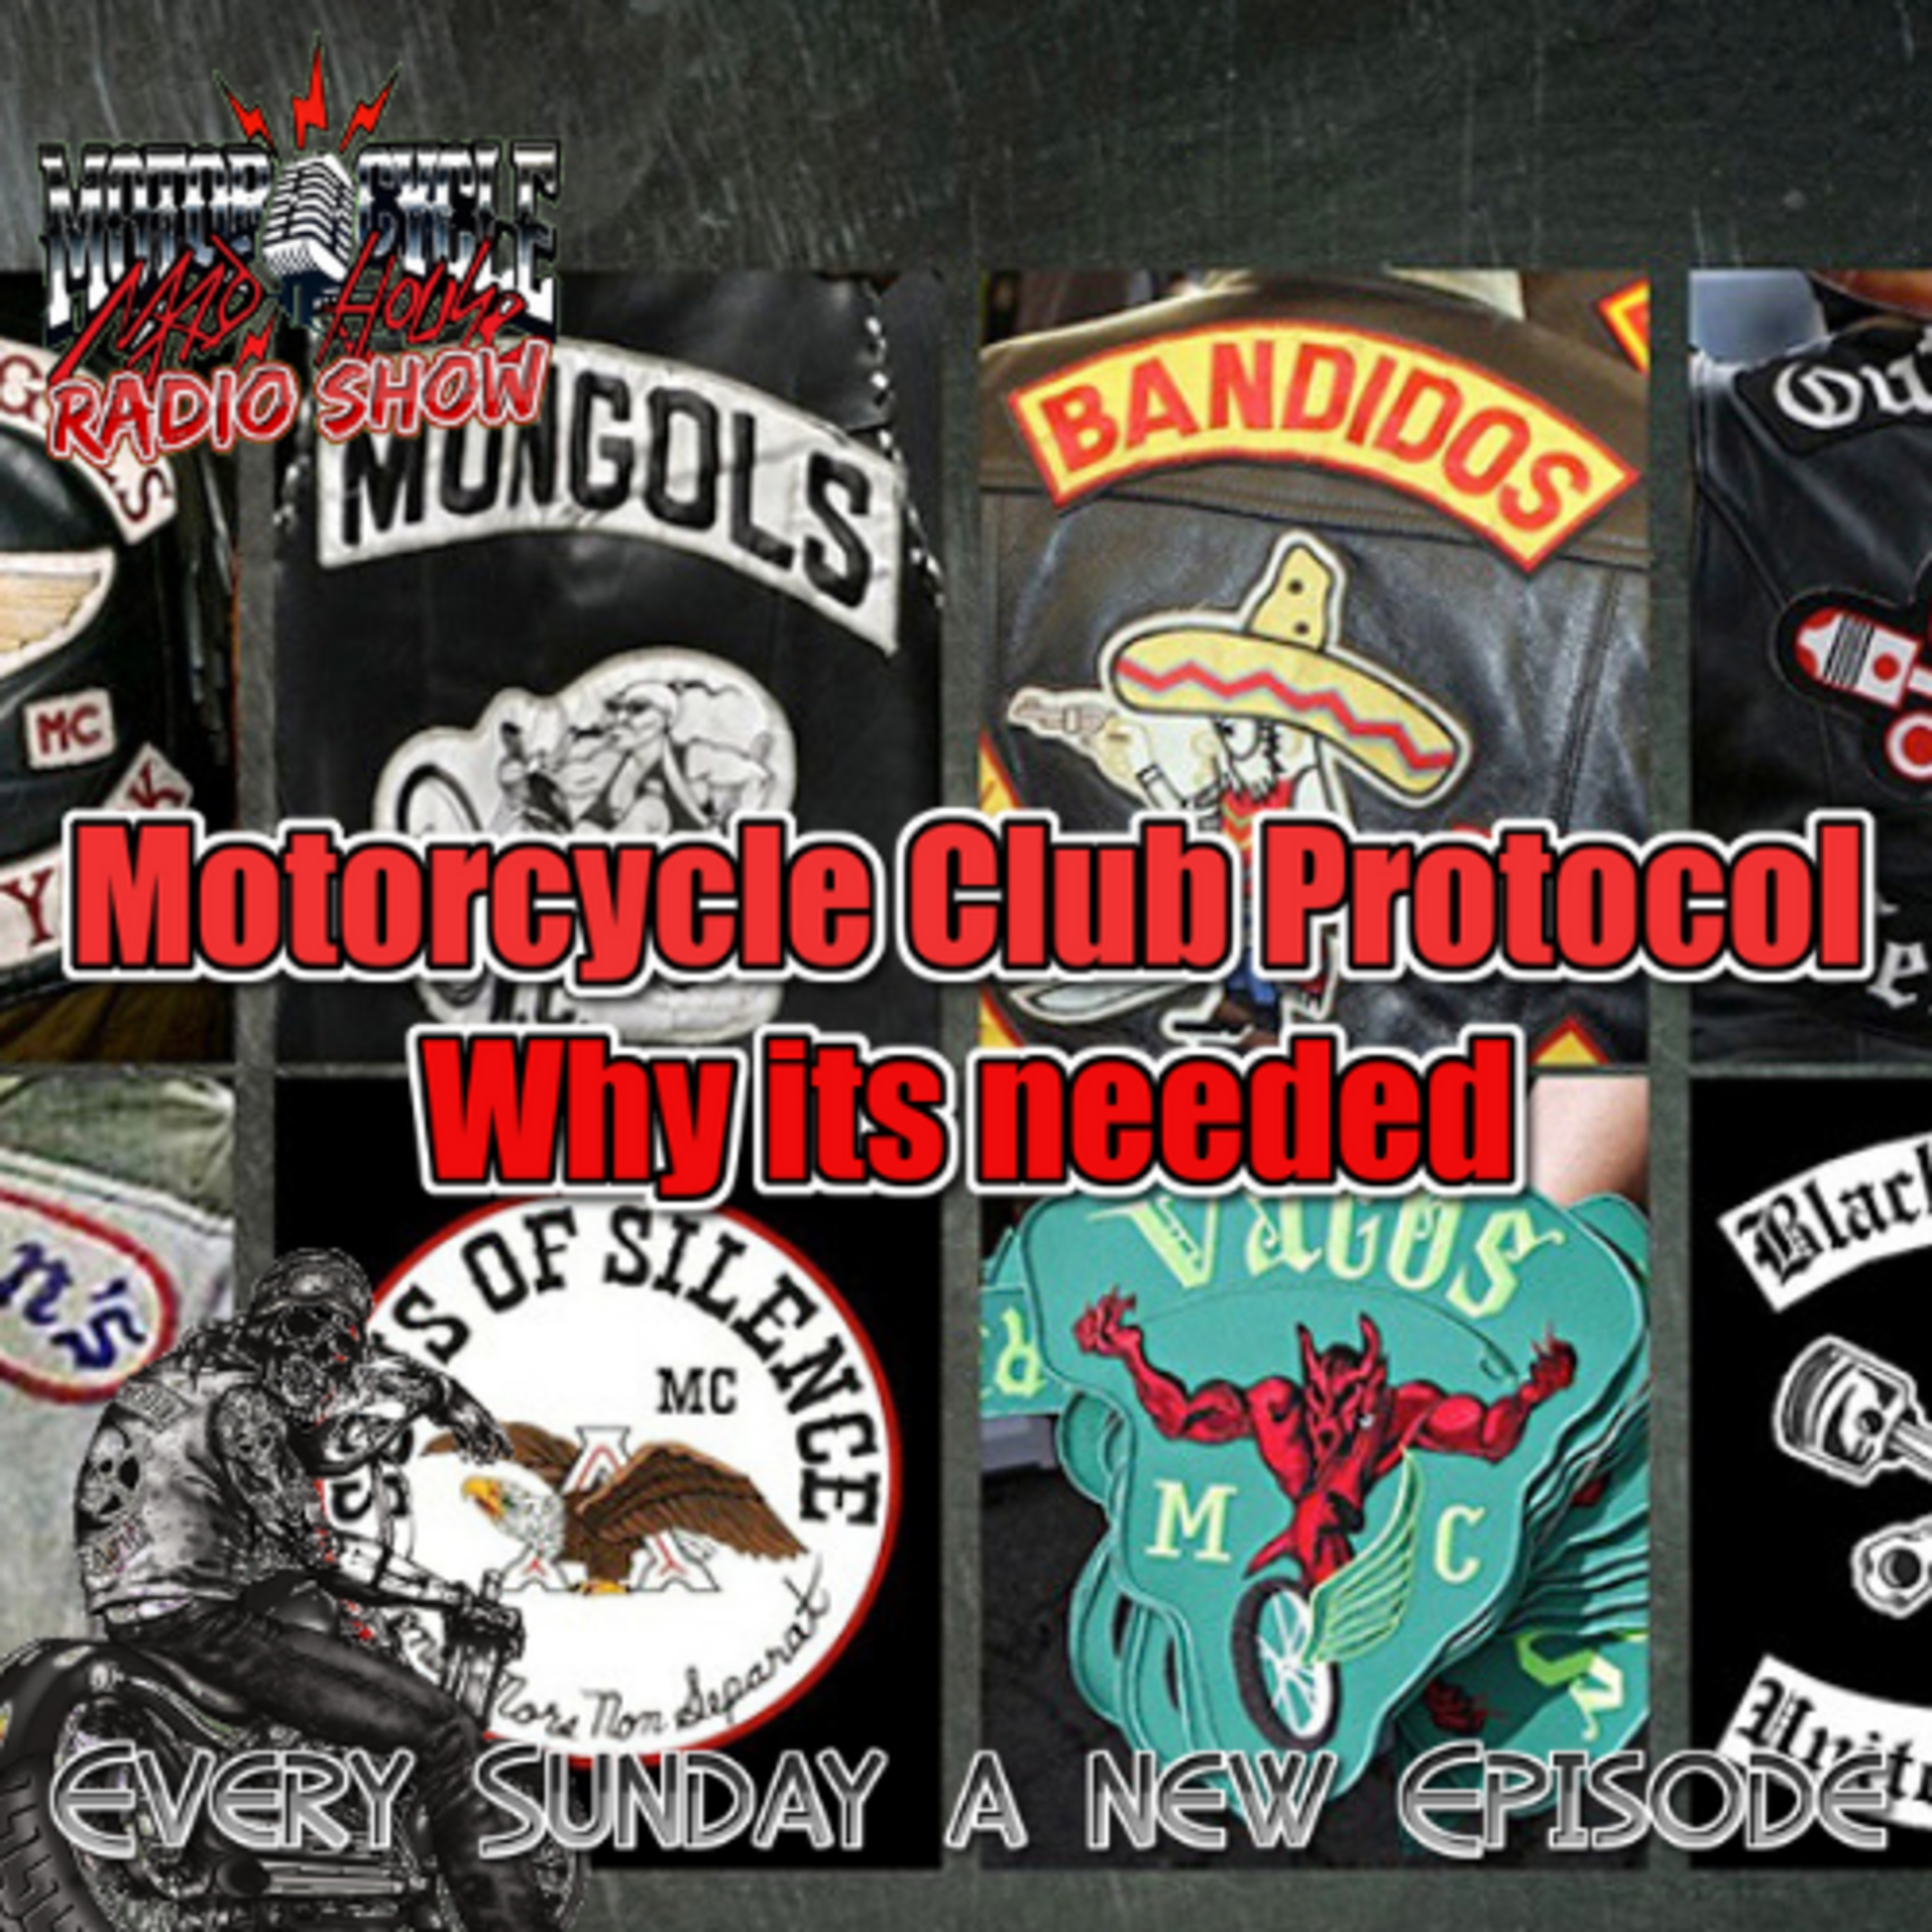 Season 2 Episode 9 You want to know why Motorcycle Club Protocol Exists? This incident in Texas is exactly why.